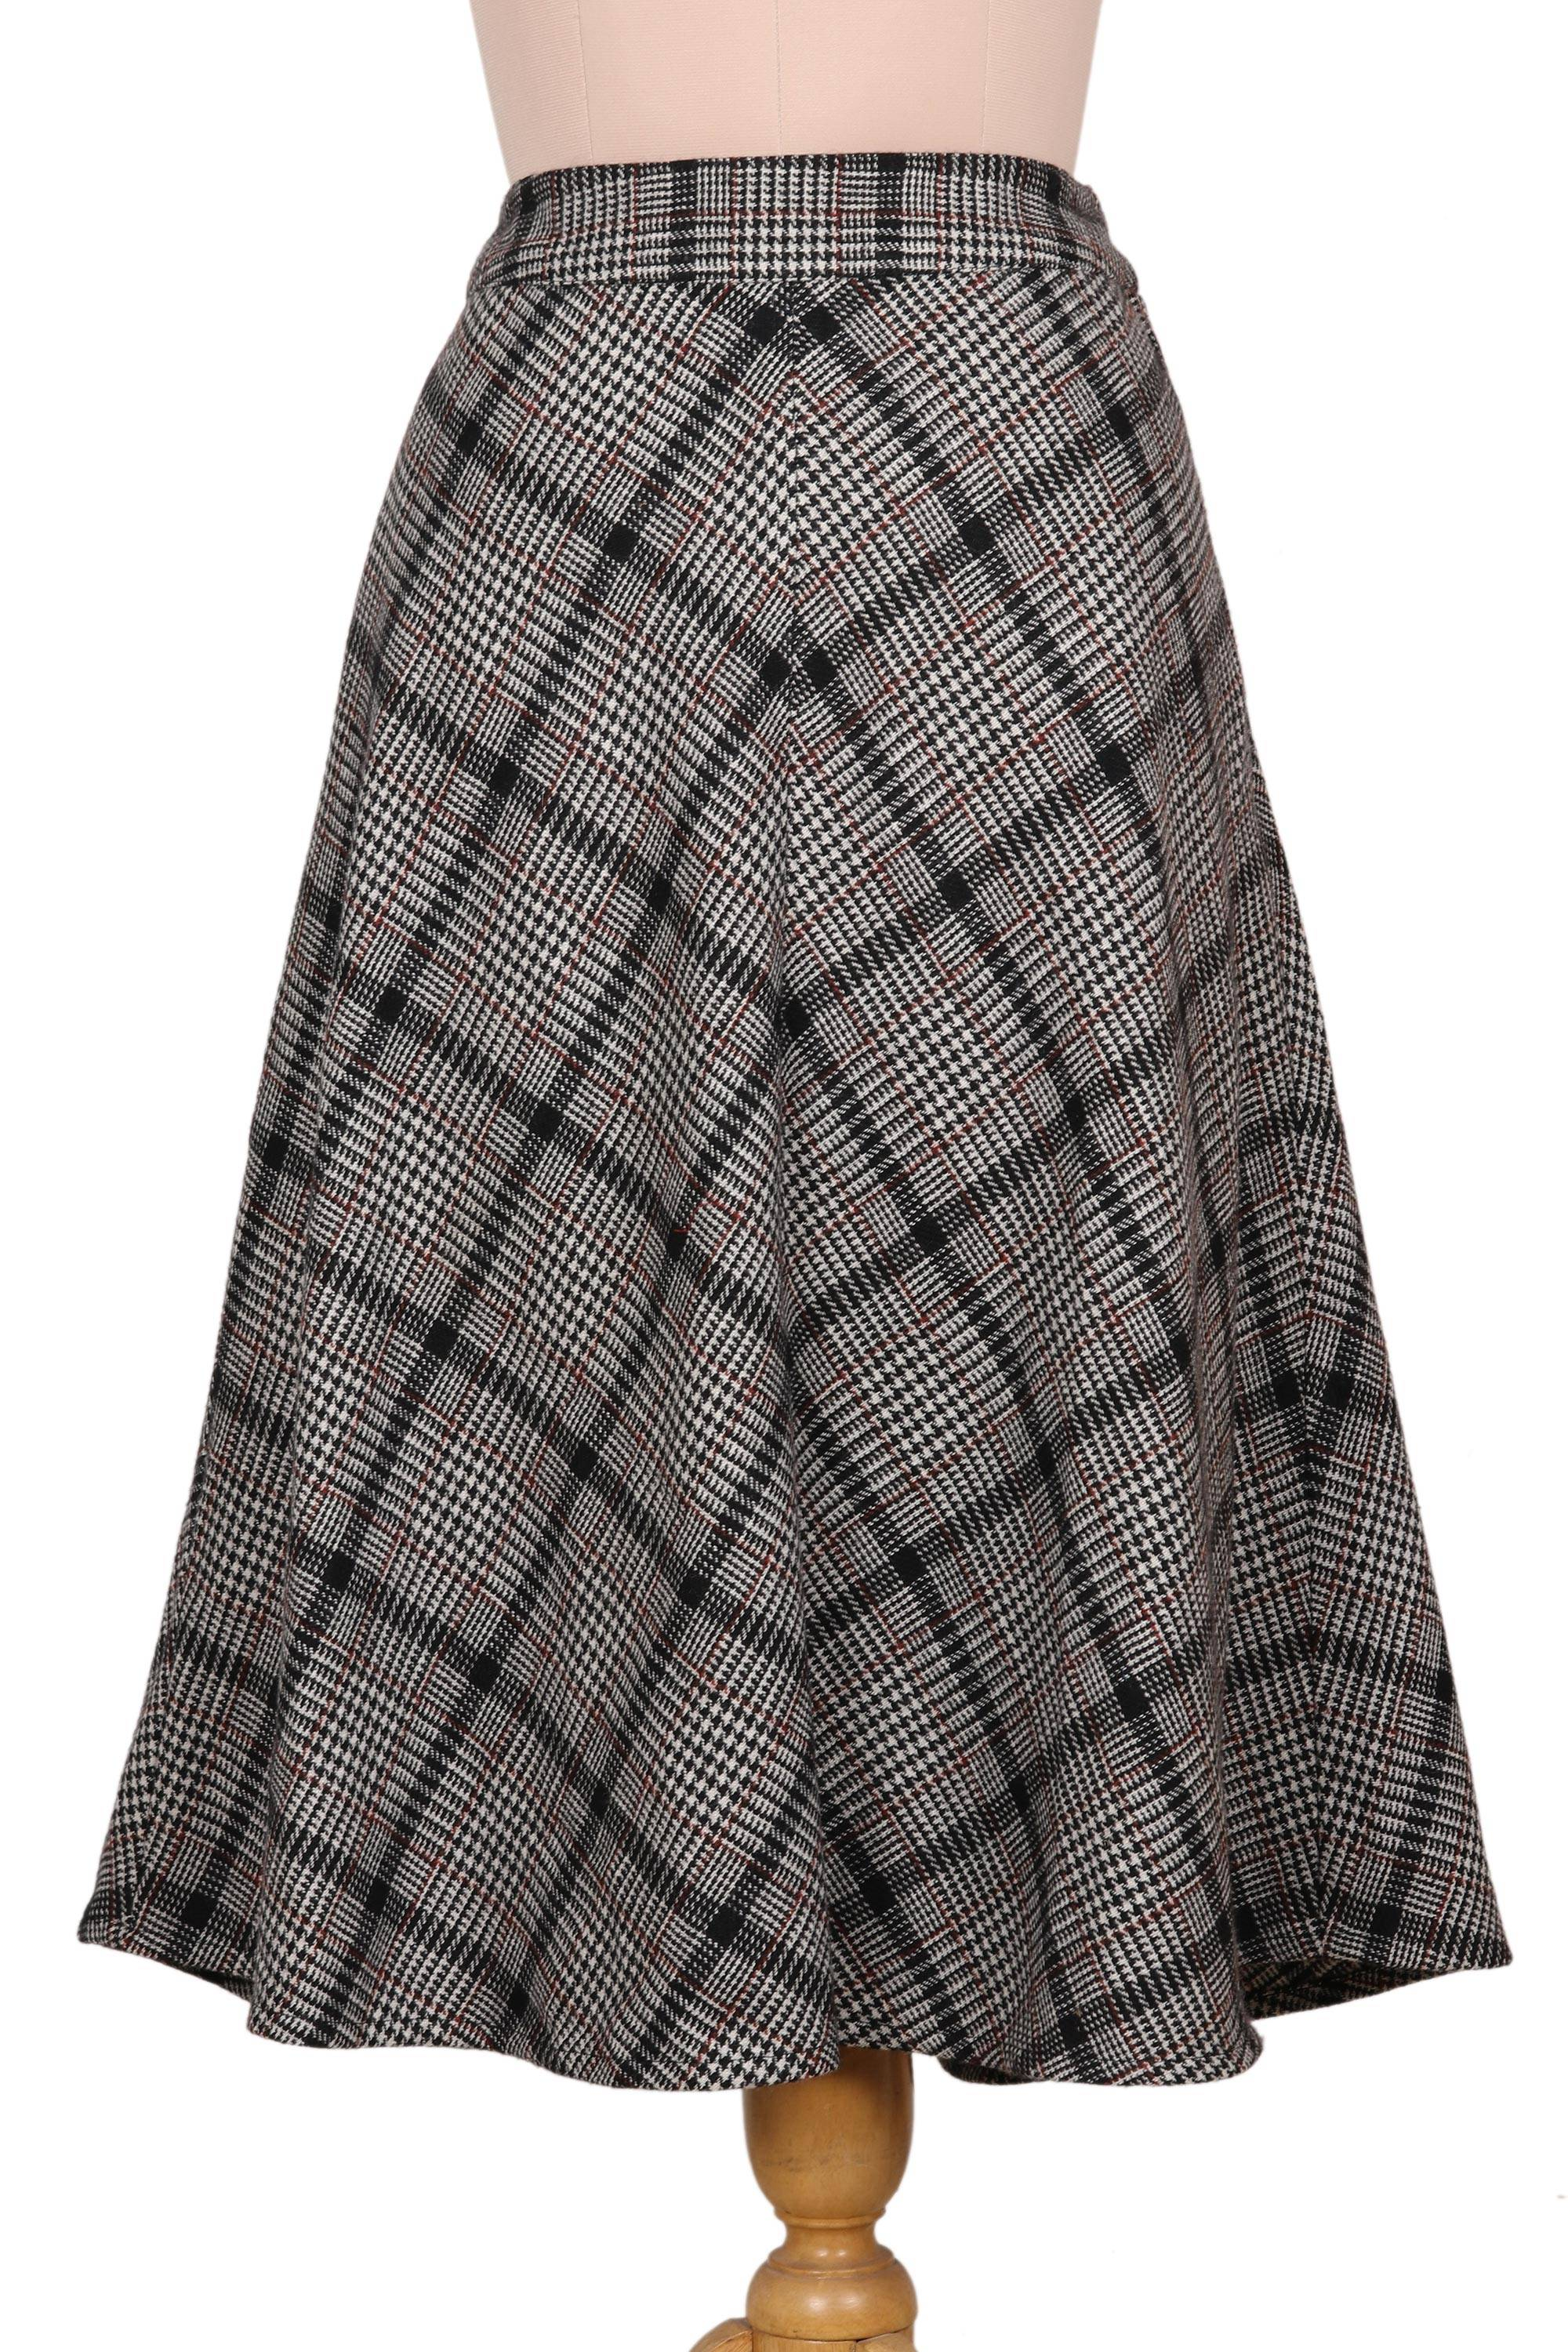 """NOVICA – Hand Crafted Wool Blend Houndstooth Skirt, """"Jaipur Chic in Houndstooth"""""""